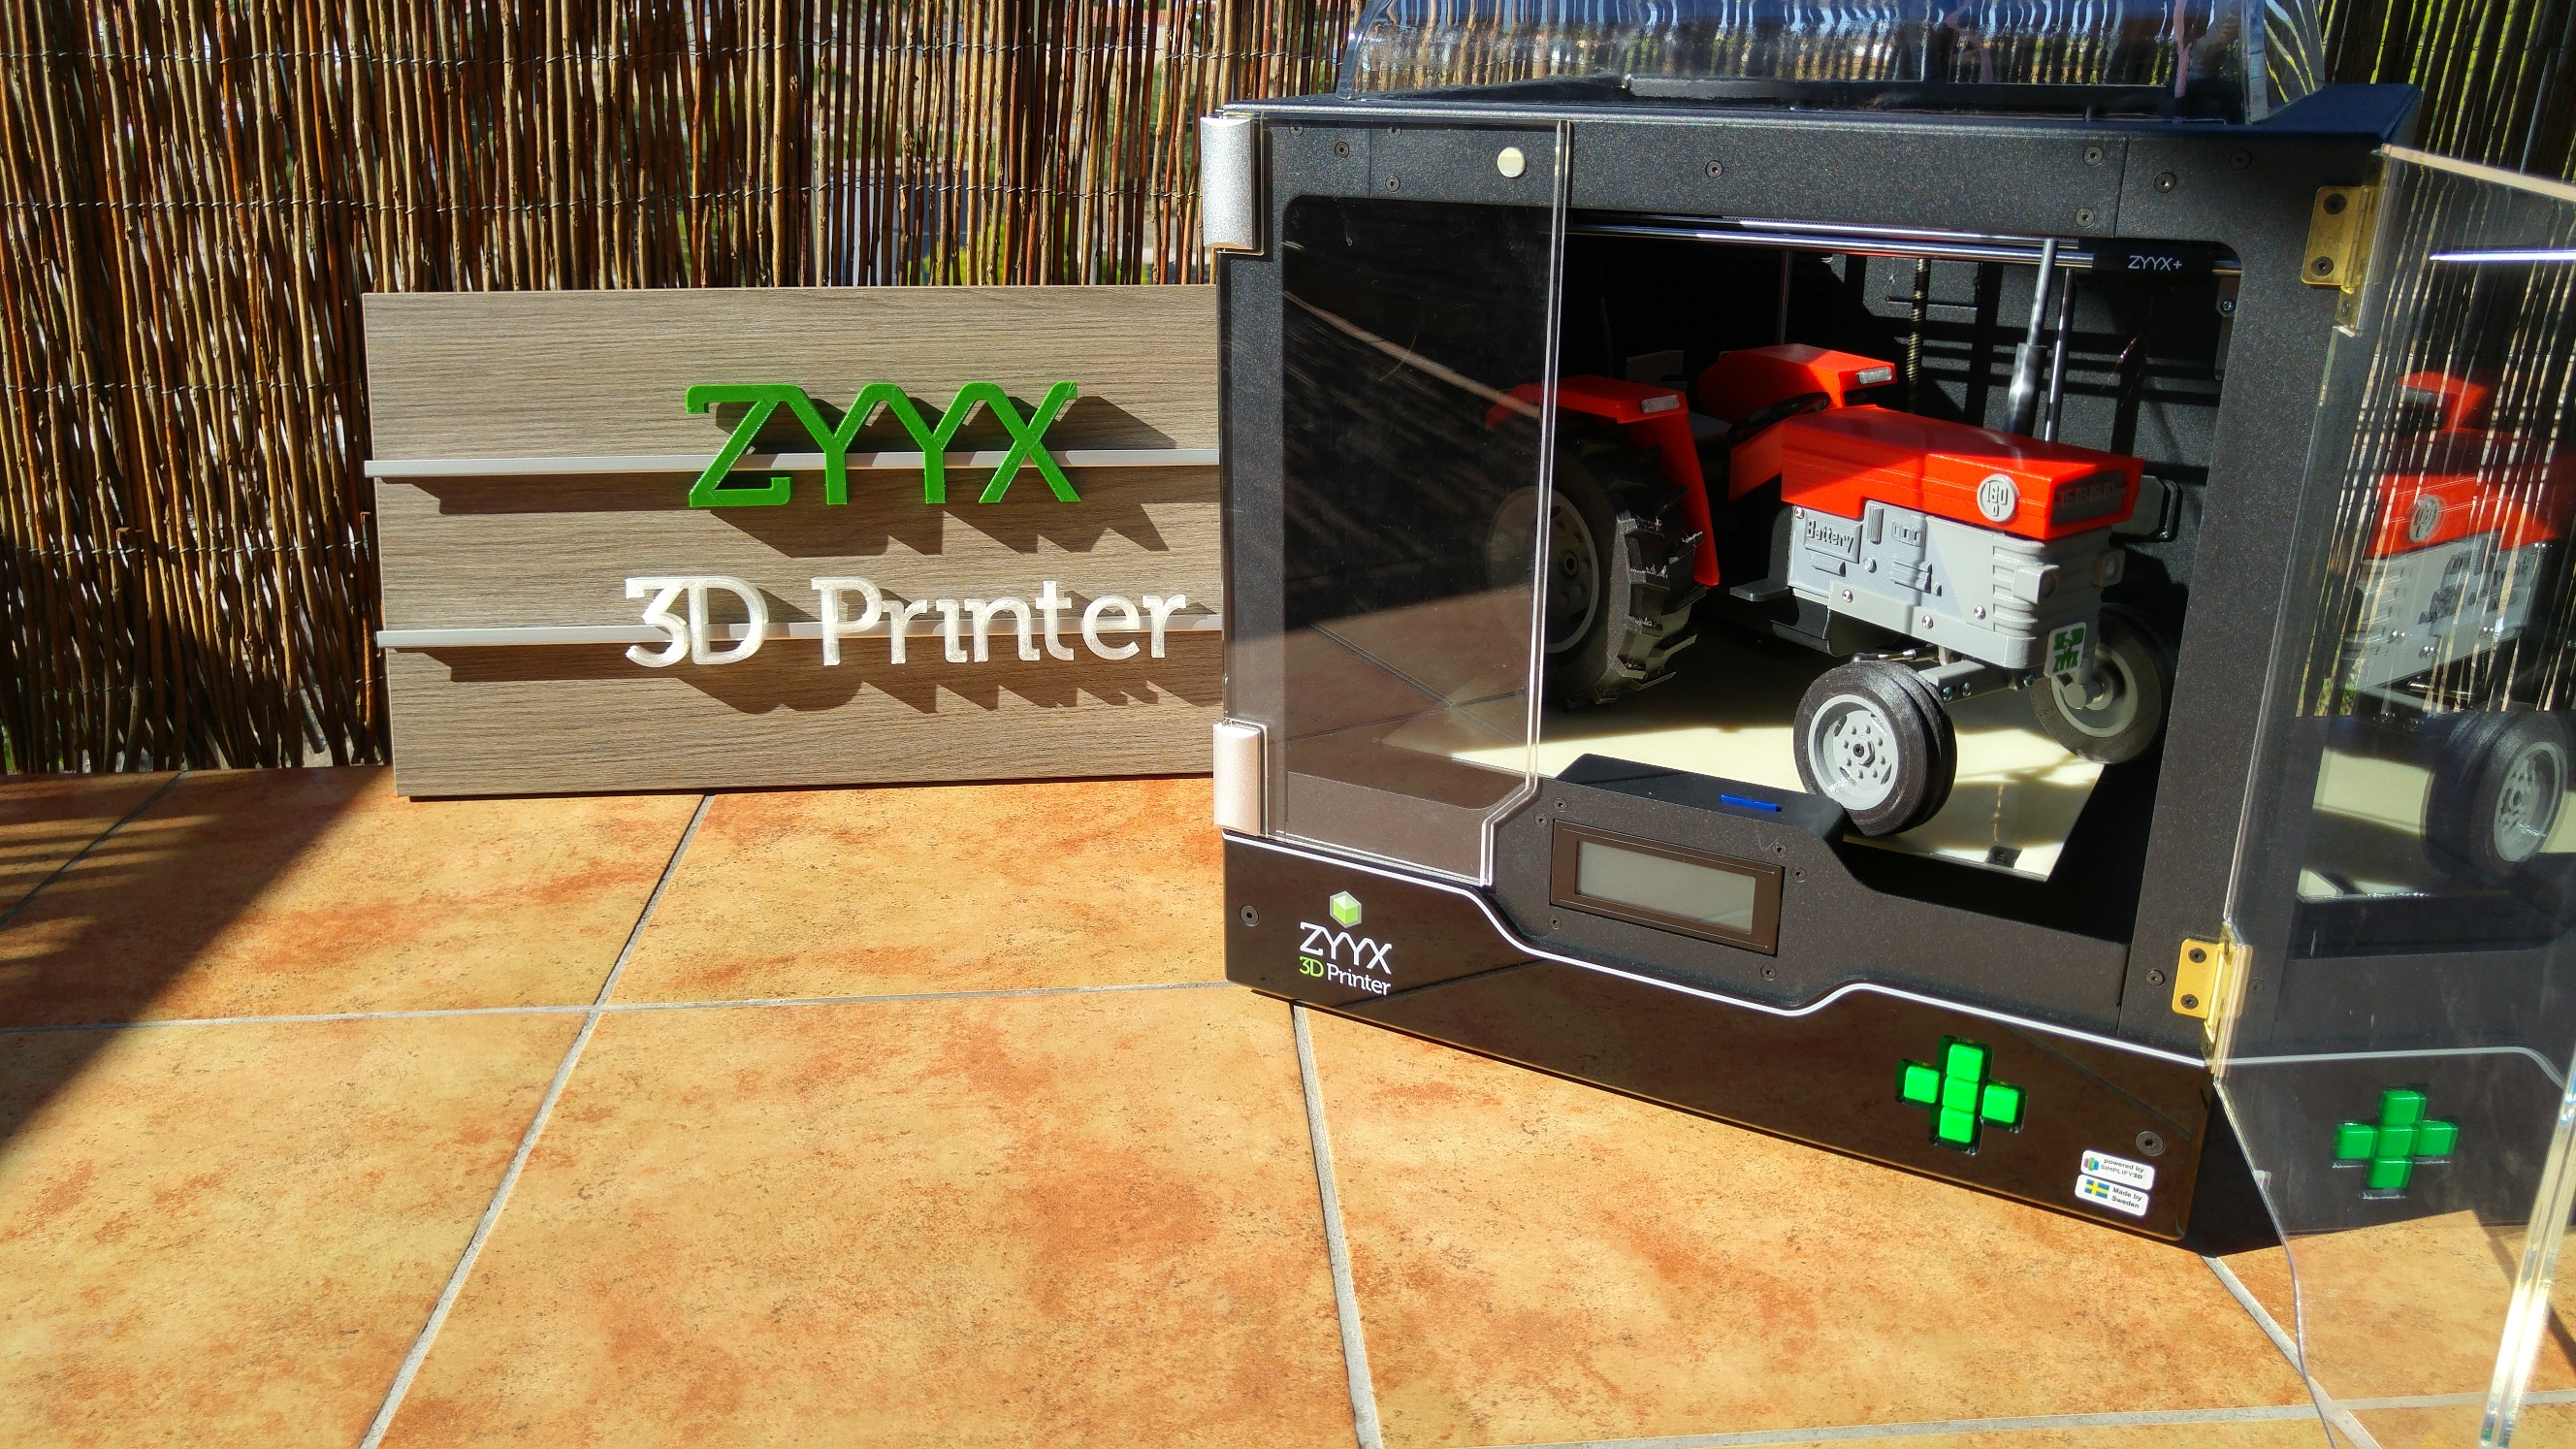 Makitpro and the OpenRC tractor - ZYYX 3D Printer